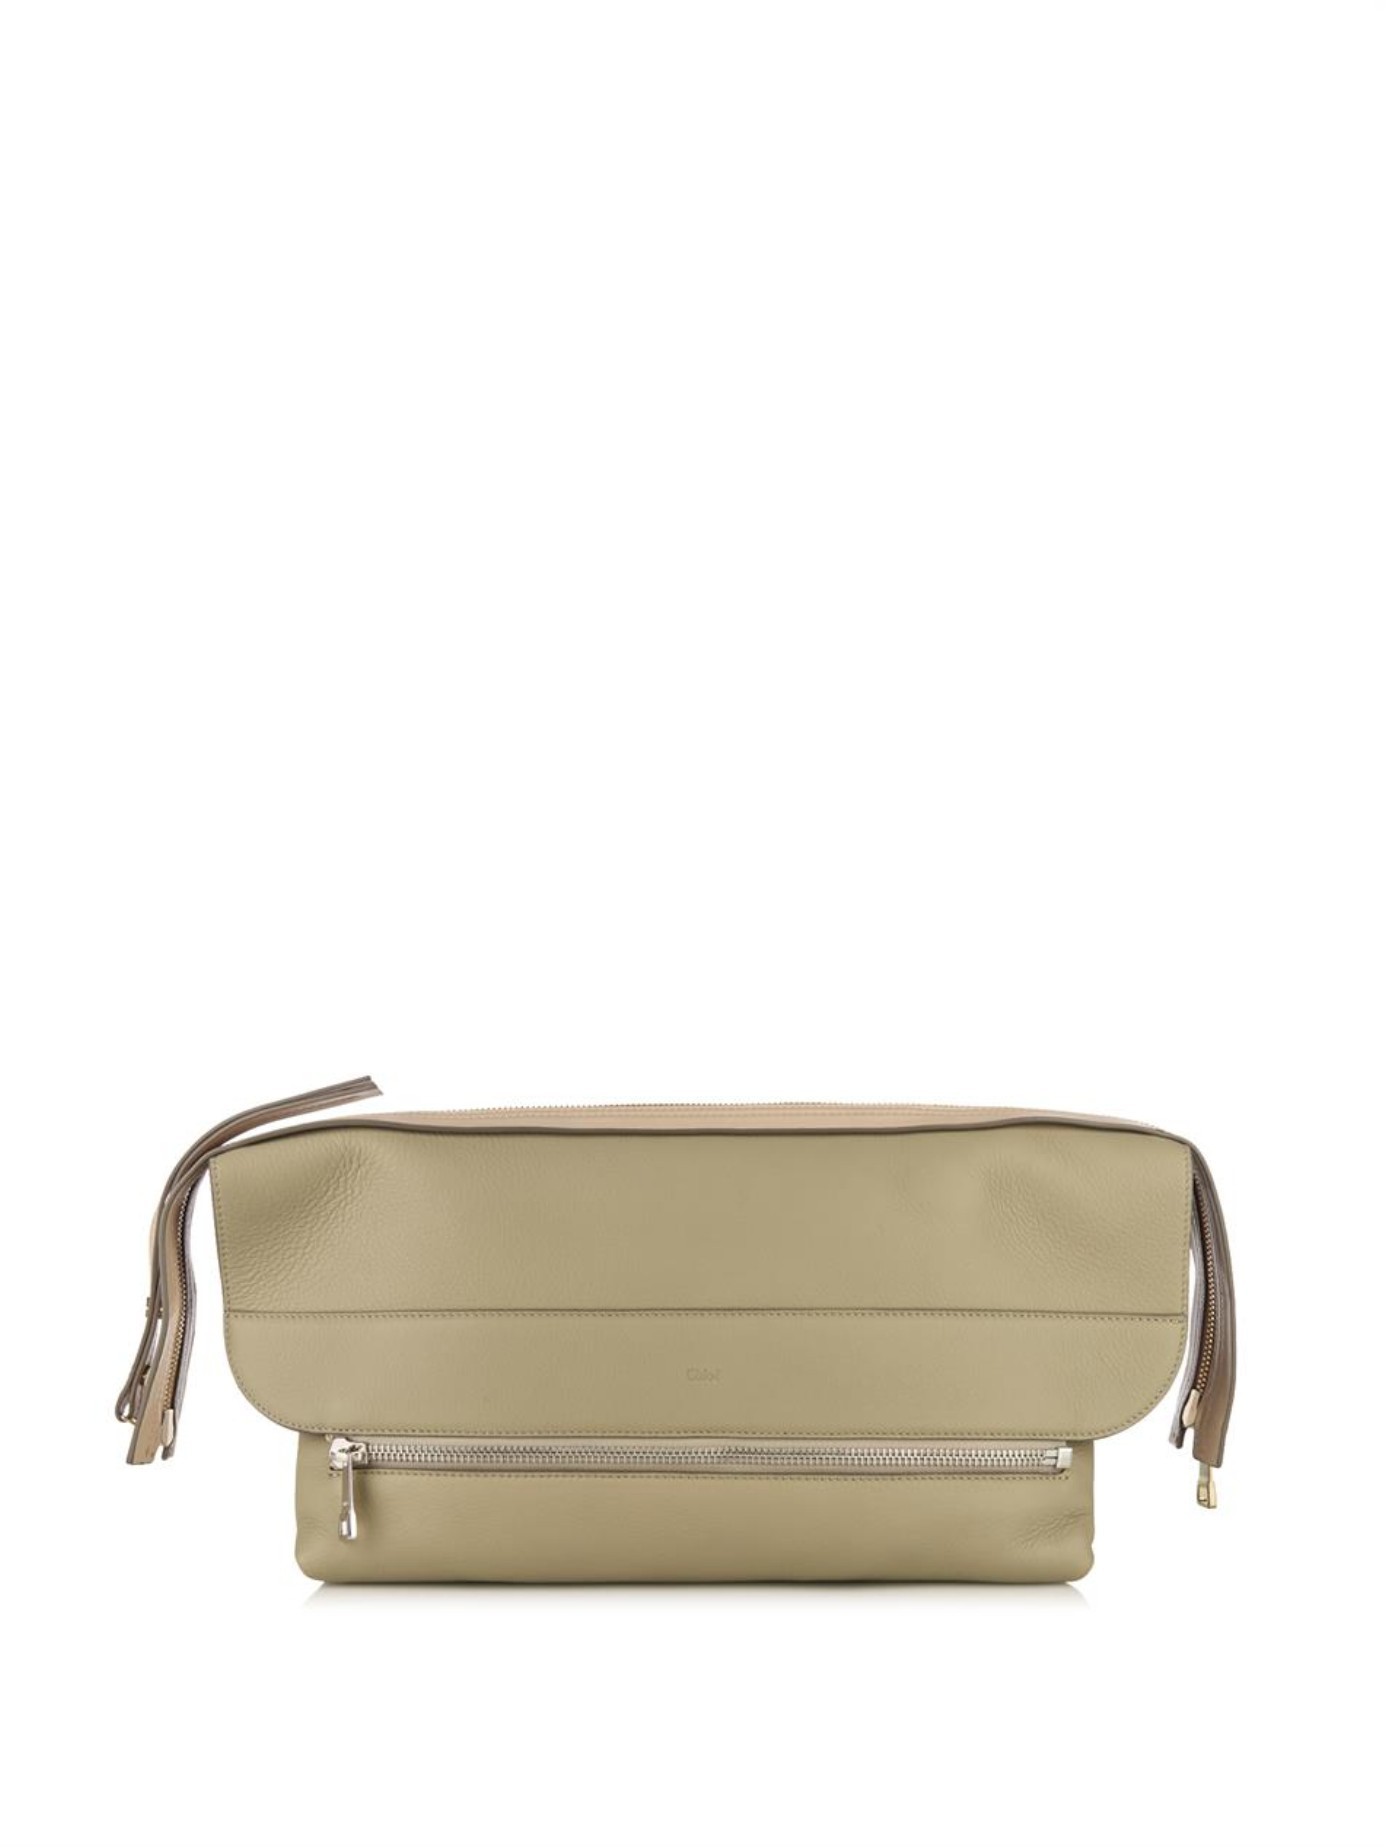 Chlo¨¦ Dalston Bi-colour Leather Clutch in Green (LIGHT GREEN) | Lyst